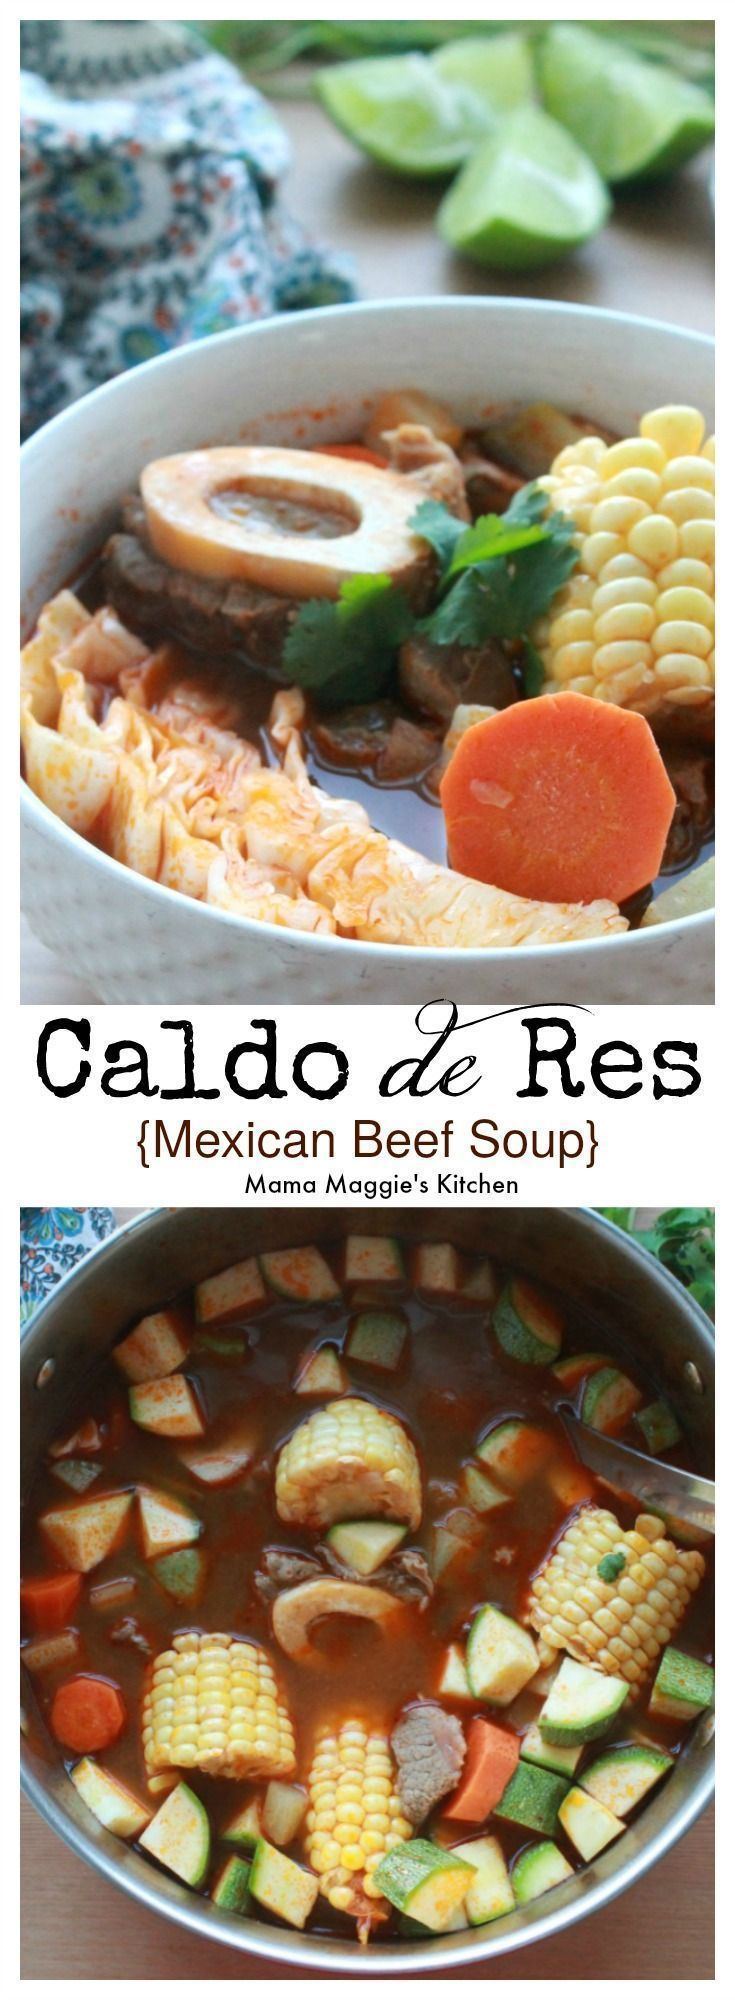 Caldo de Res, or Mexican Beef Soup. #mexicandishes